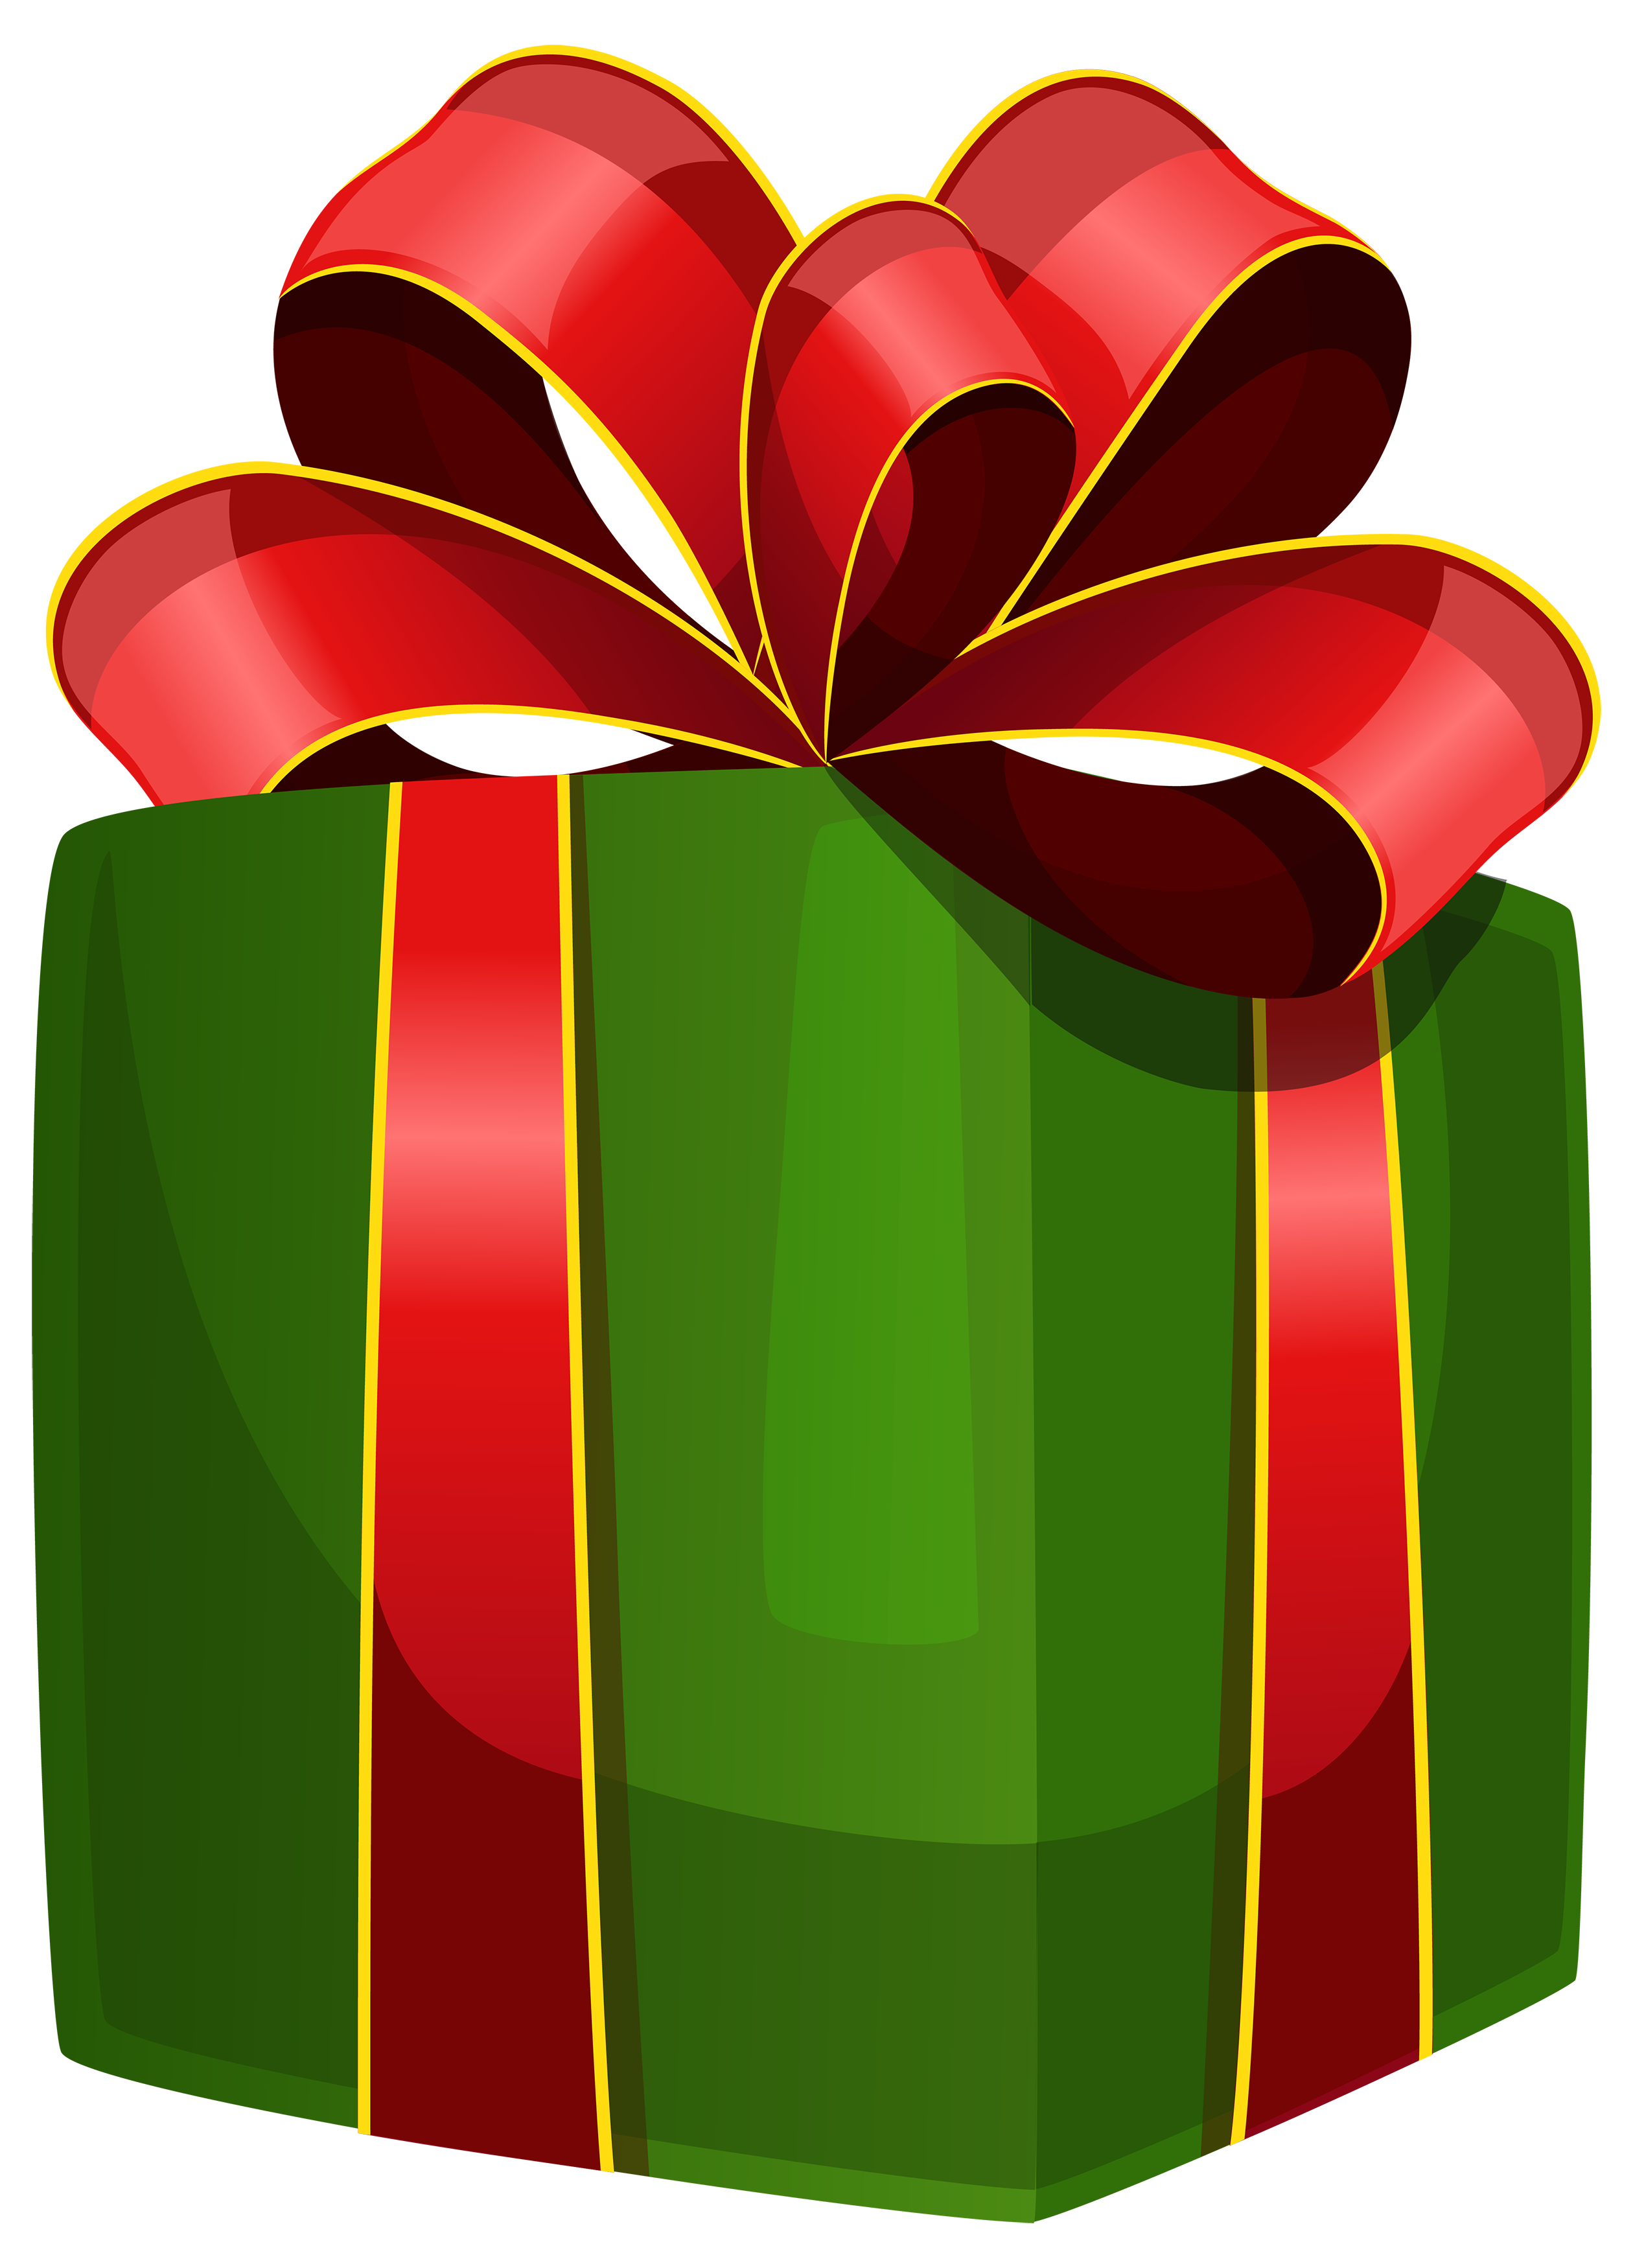 Green box png best. Gift clipart 3 gift